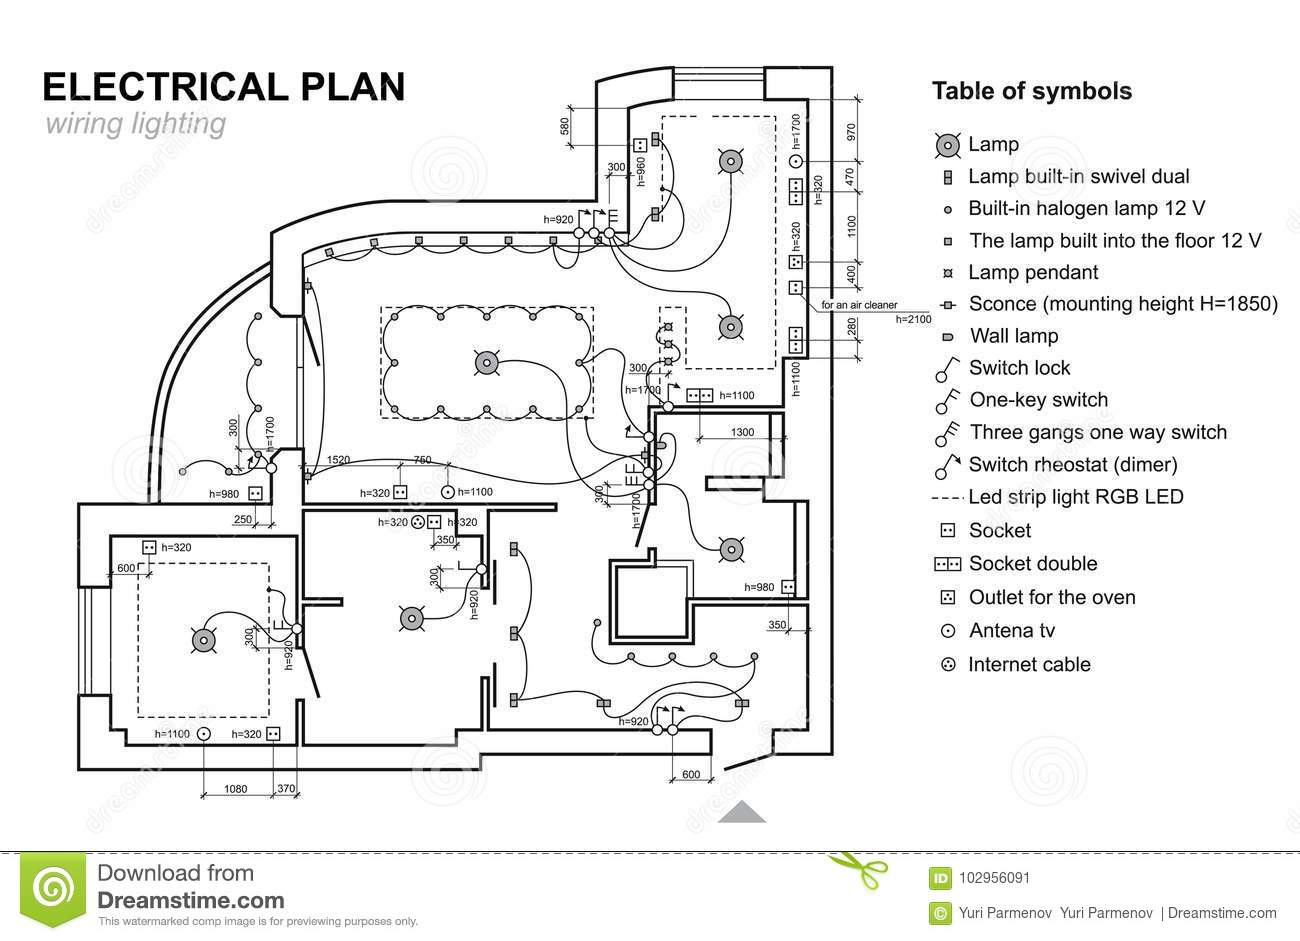 Plan Wiring Lighting. Electrical Schematic Interior. Set Of Standard ...